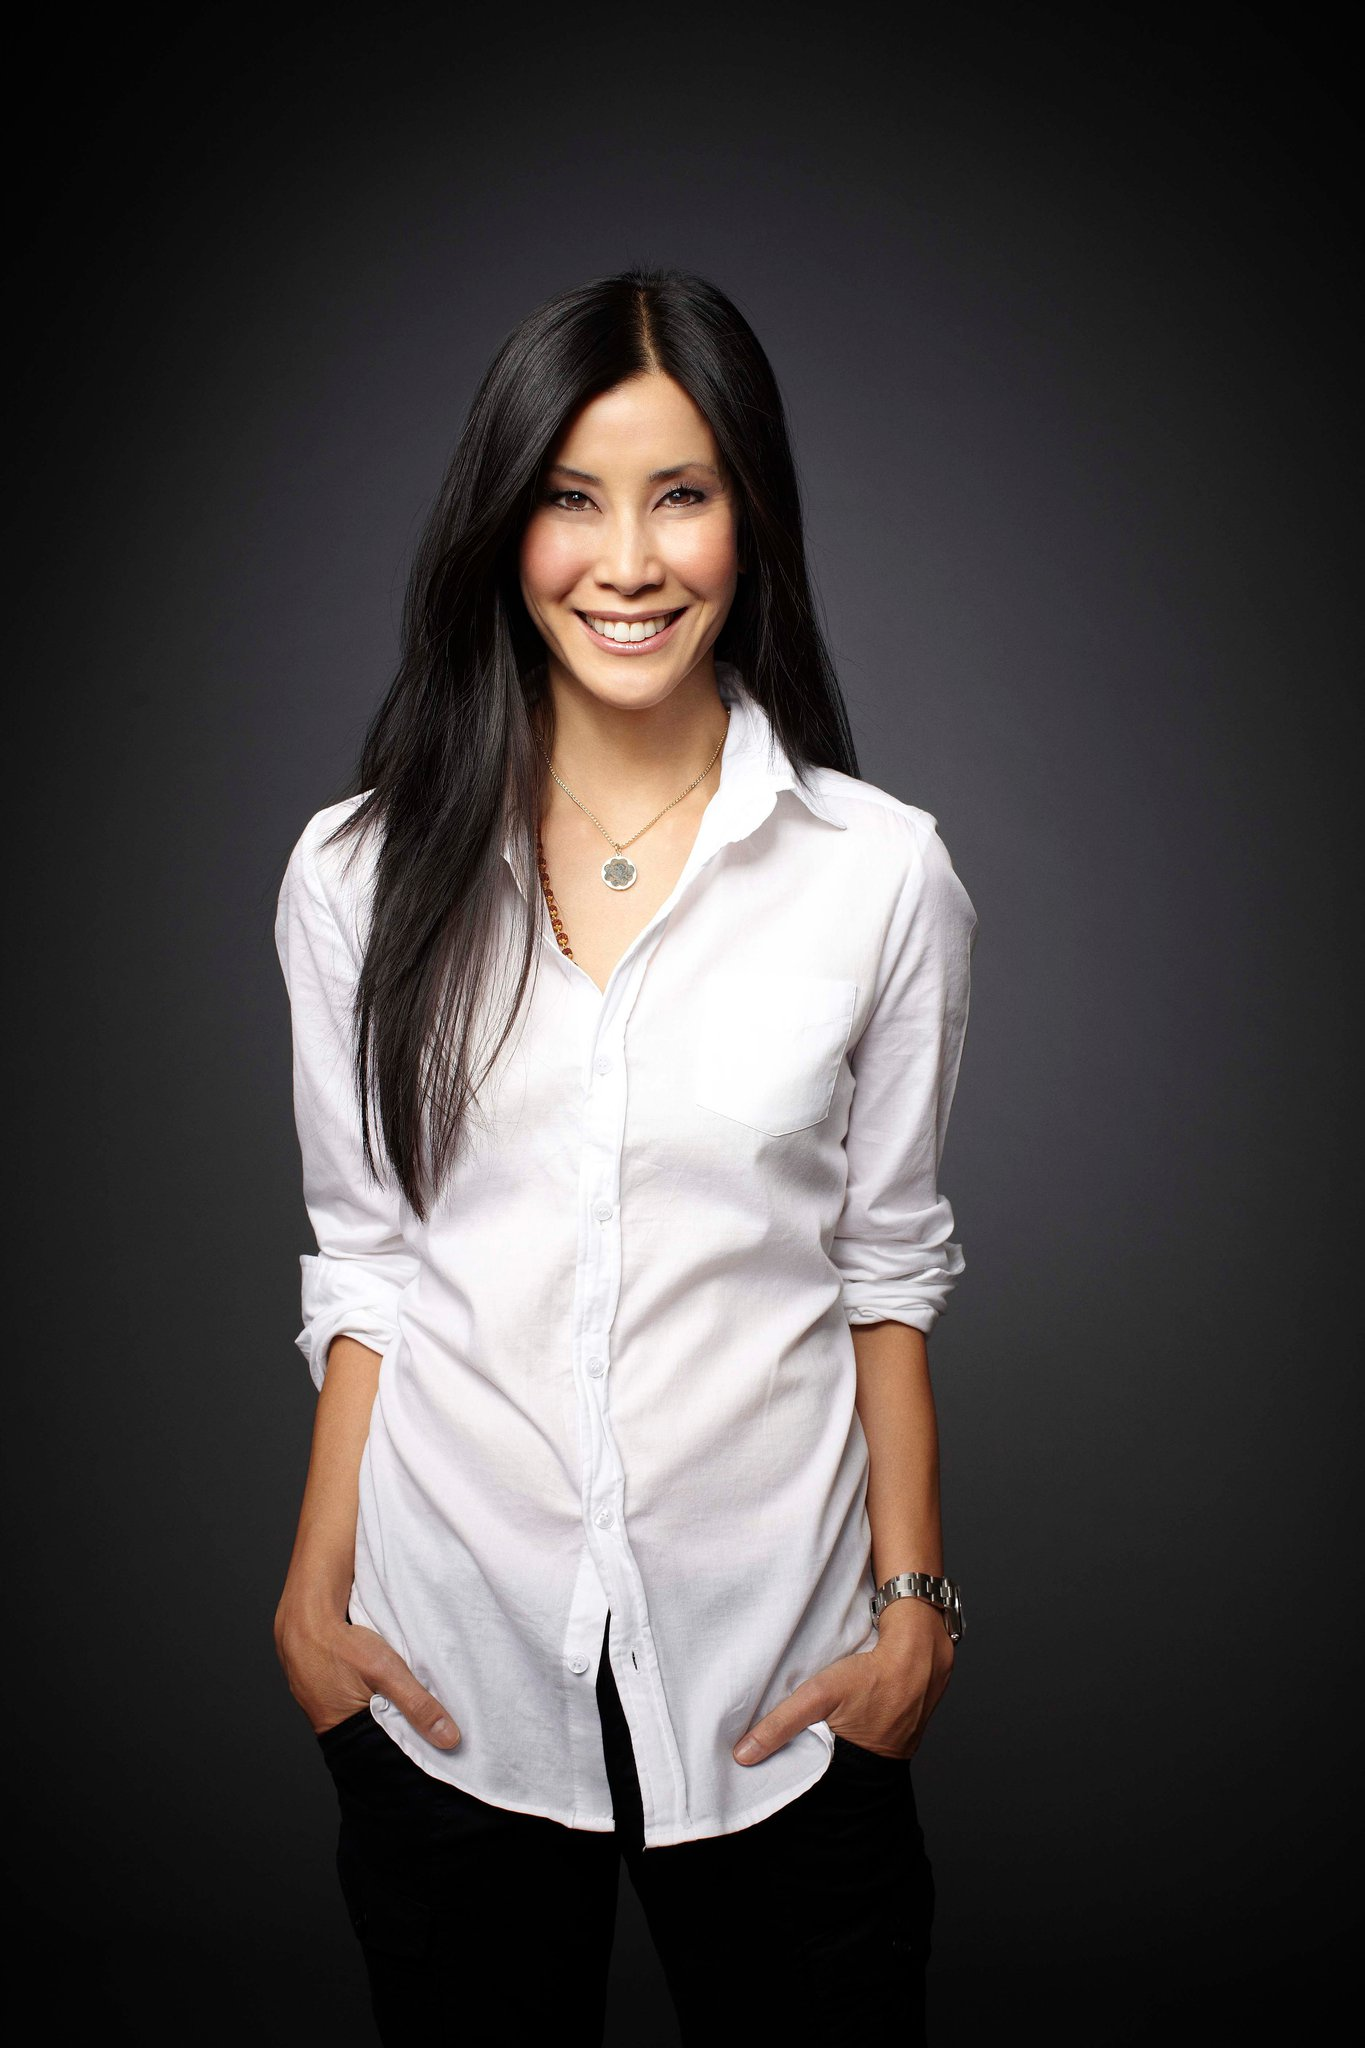 169818_489420248322_5005061_o-1 Life After Prison - Our America with Lisa Ling (@lisaling)